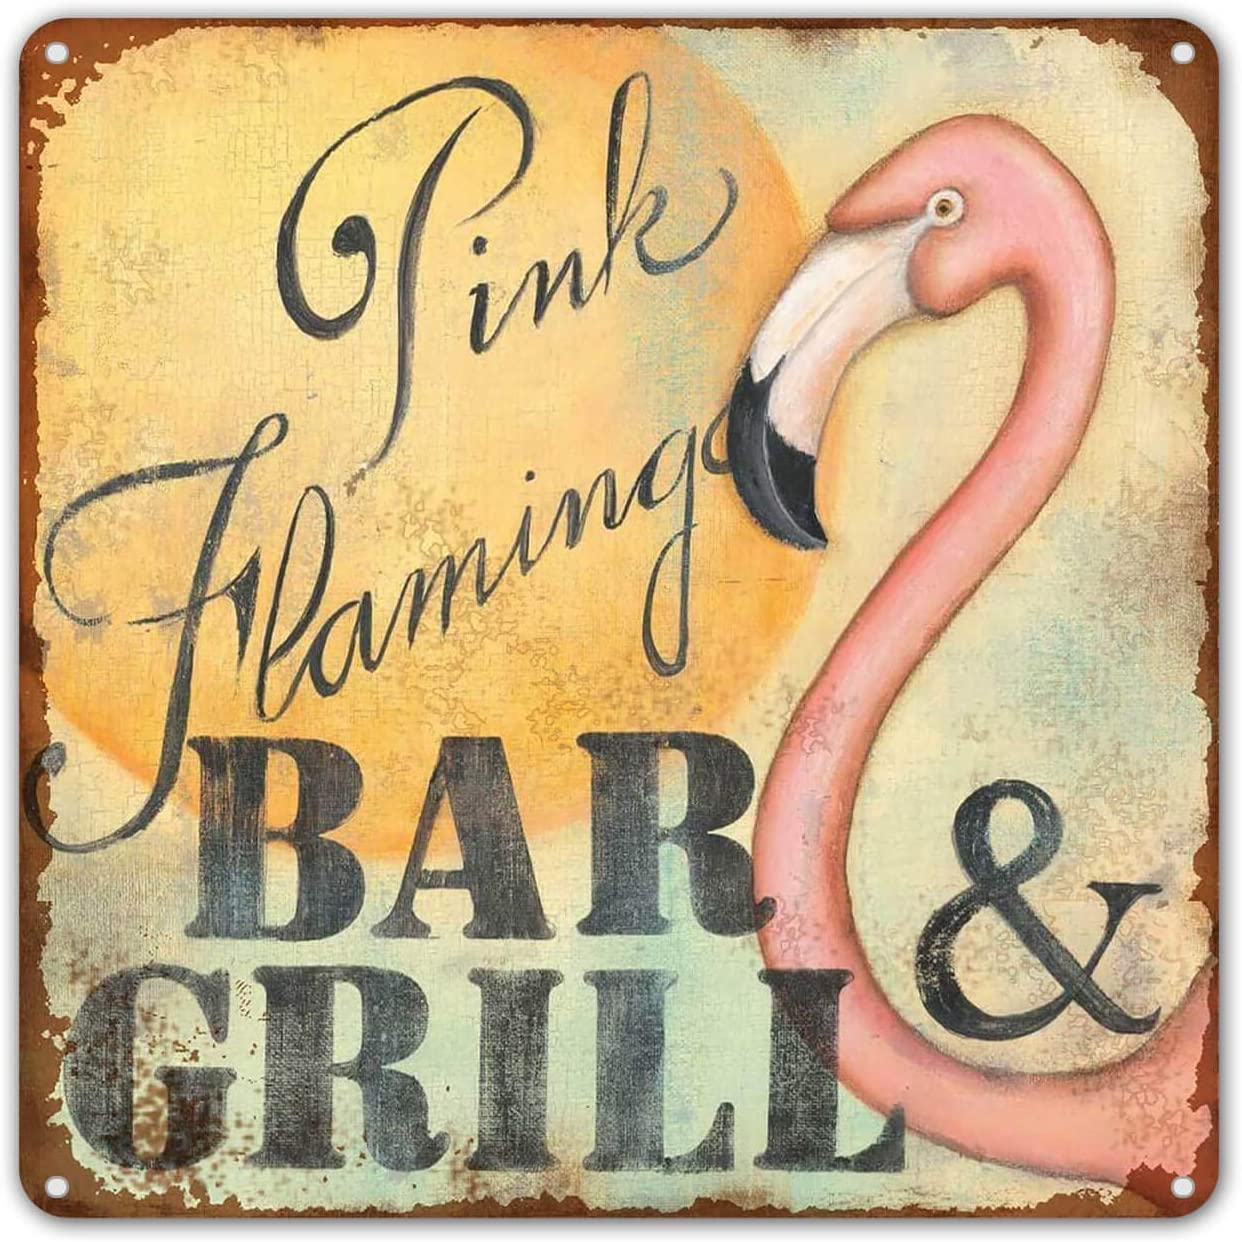 ZYPENG Pink Flamingo Bar & Grill Retro Metal Printing Wall Poster Tin Sign Wall Painting Art Metal Decor Plaques 8x8 8 x 8 inches